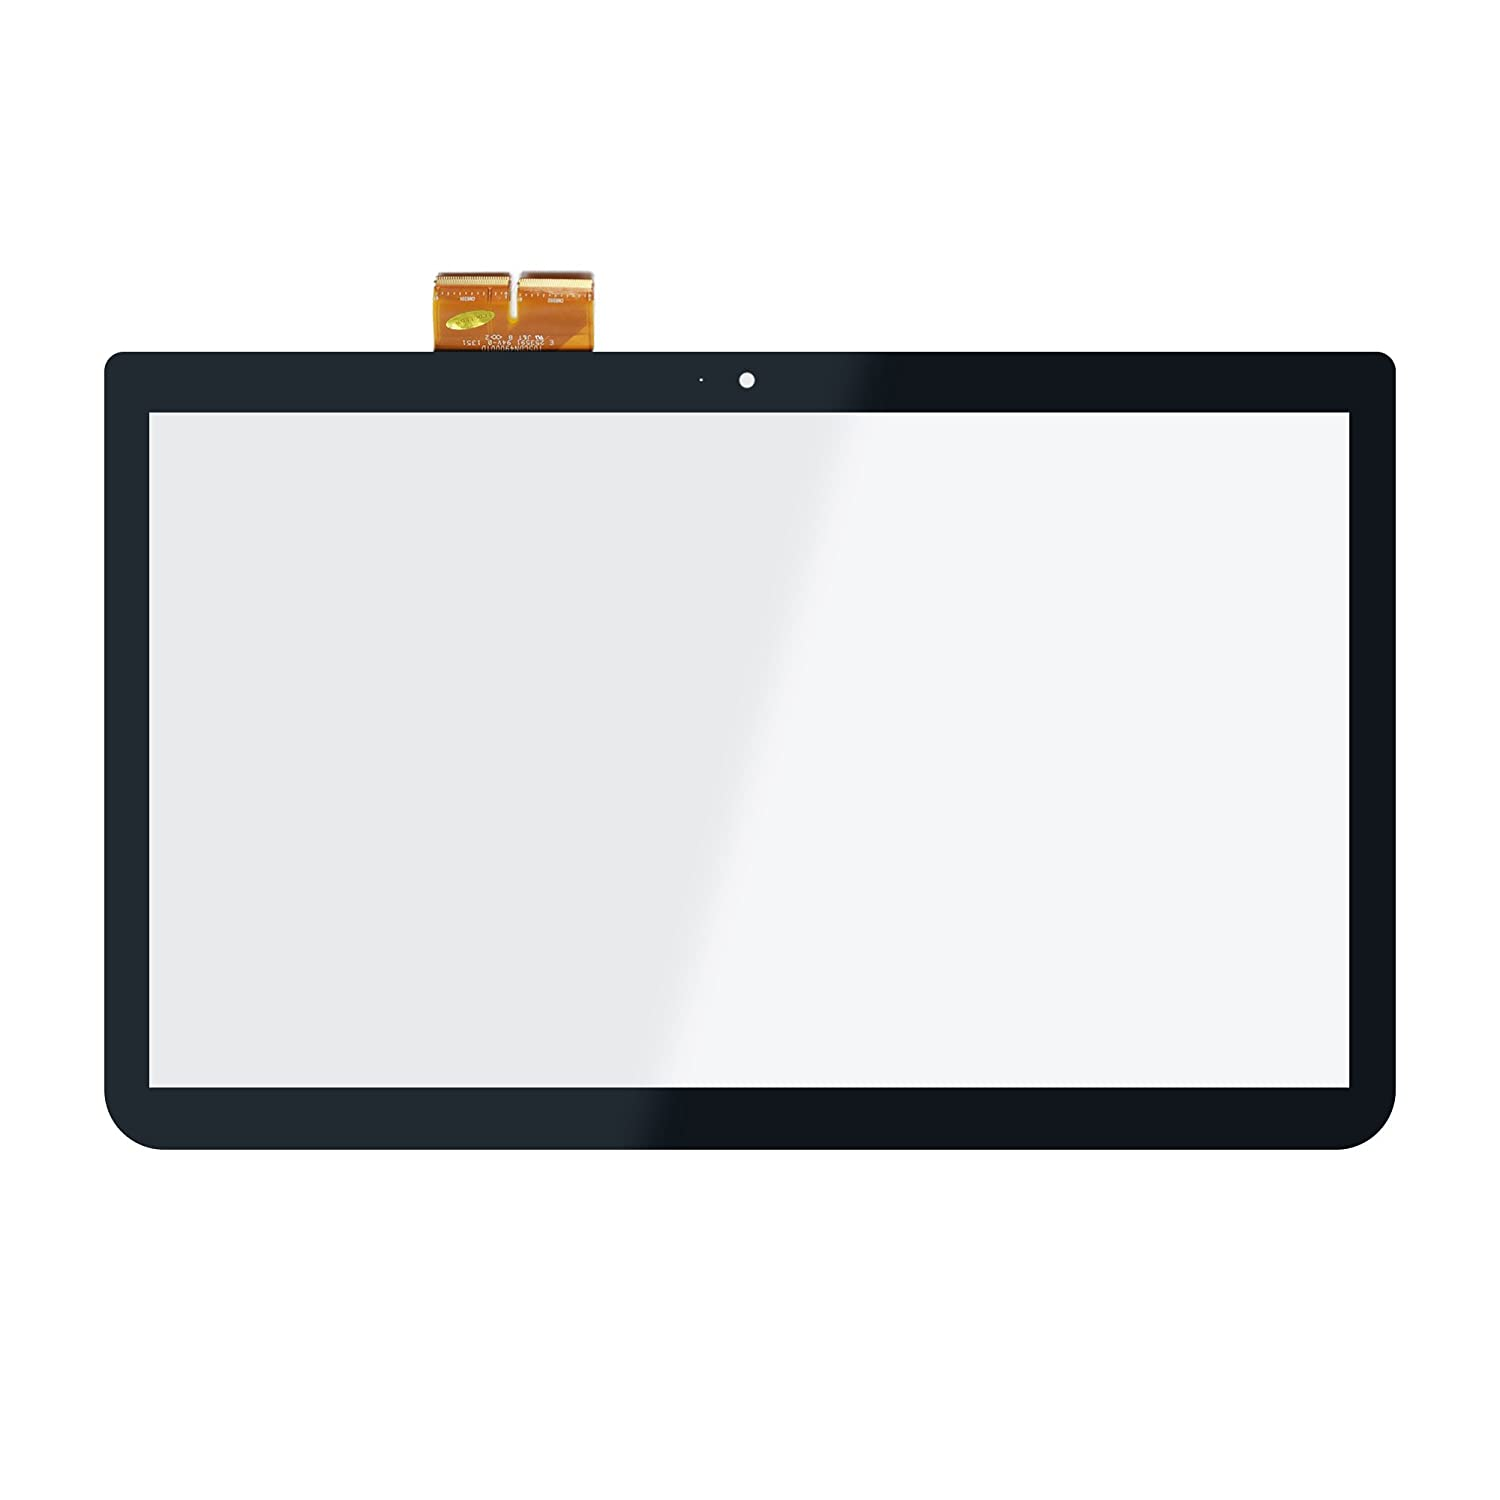 LCDOLED Replacement 15.6 inches Touch Screen Digitizer Front Glass Panel for Toshiba Satellite C50T-A C55T-A C55DT-A L55T-A Series C55T-A5222 C55DT-A5307 L55T-A5186 L55T-A5290 (No Bezel)